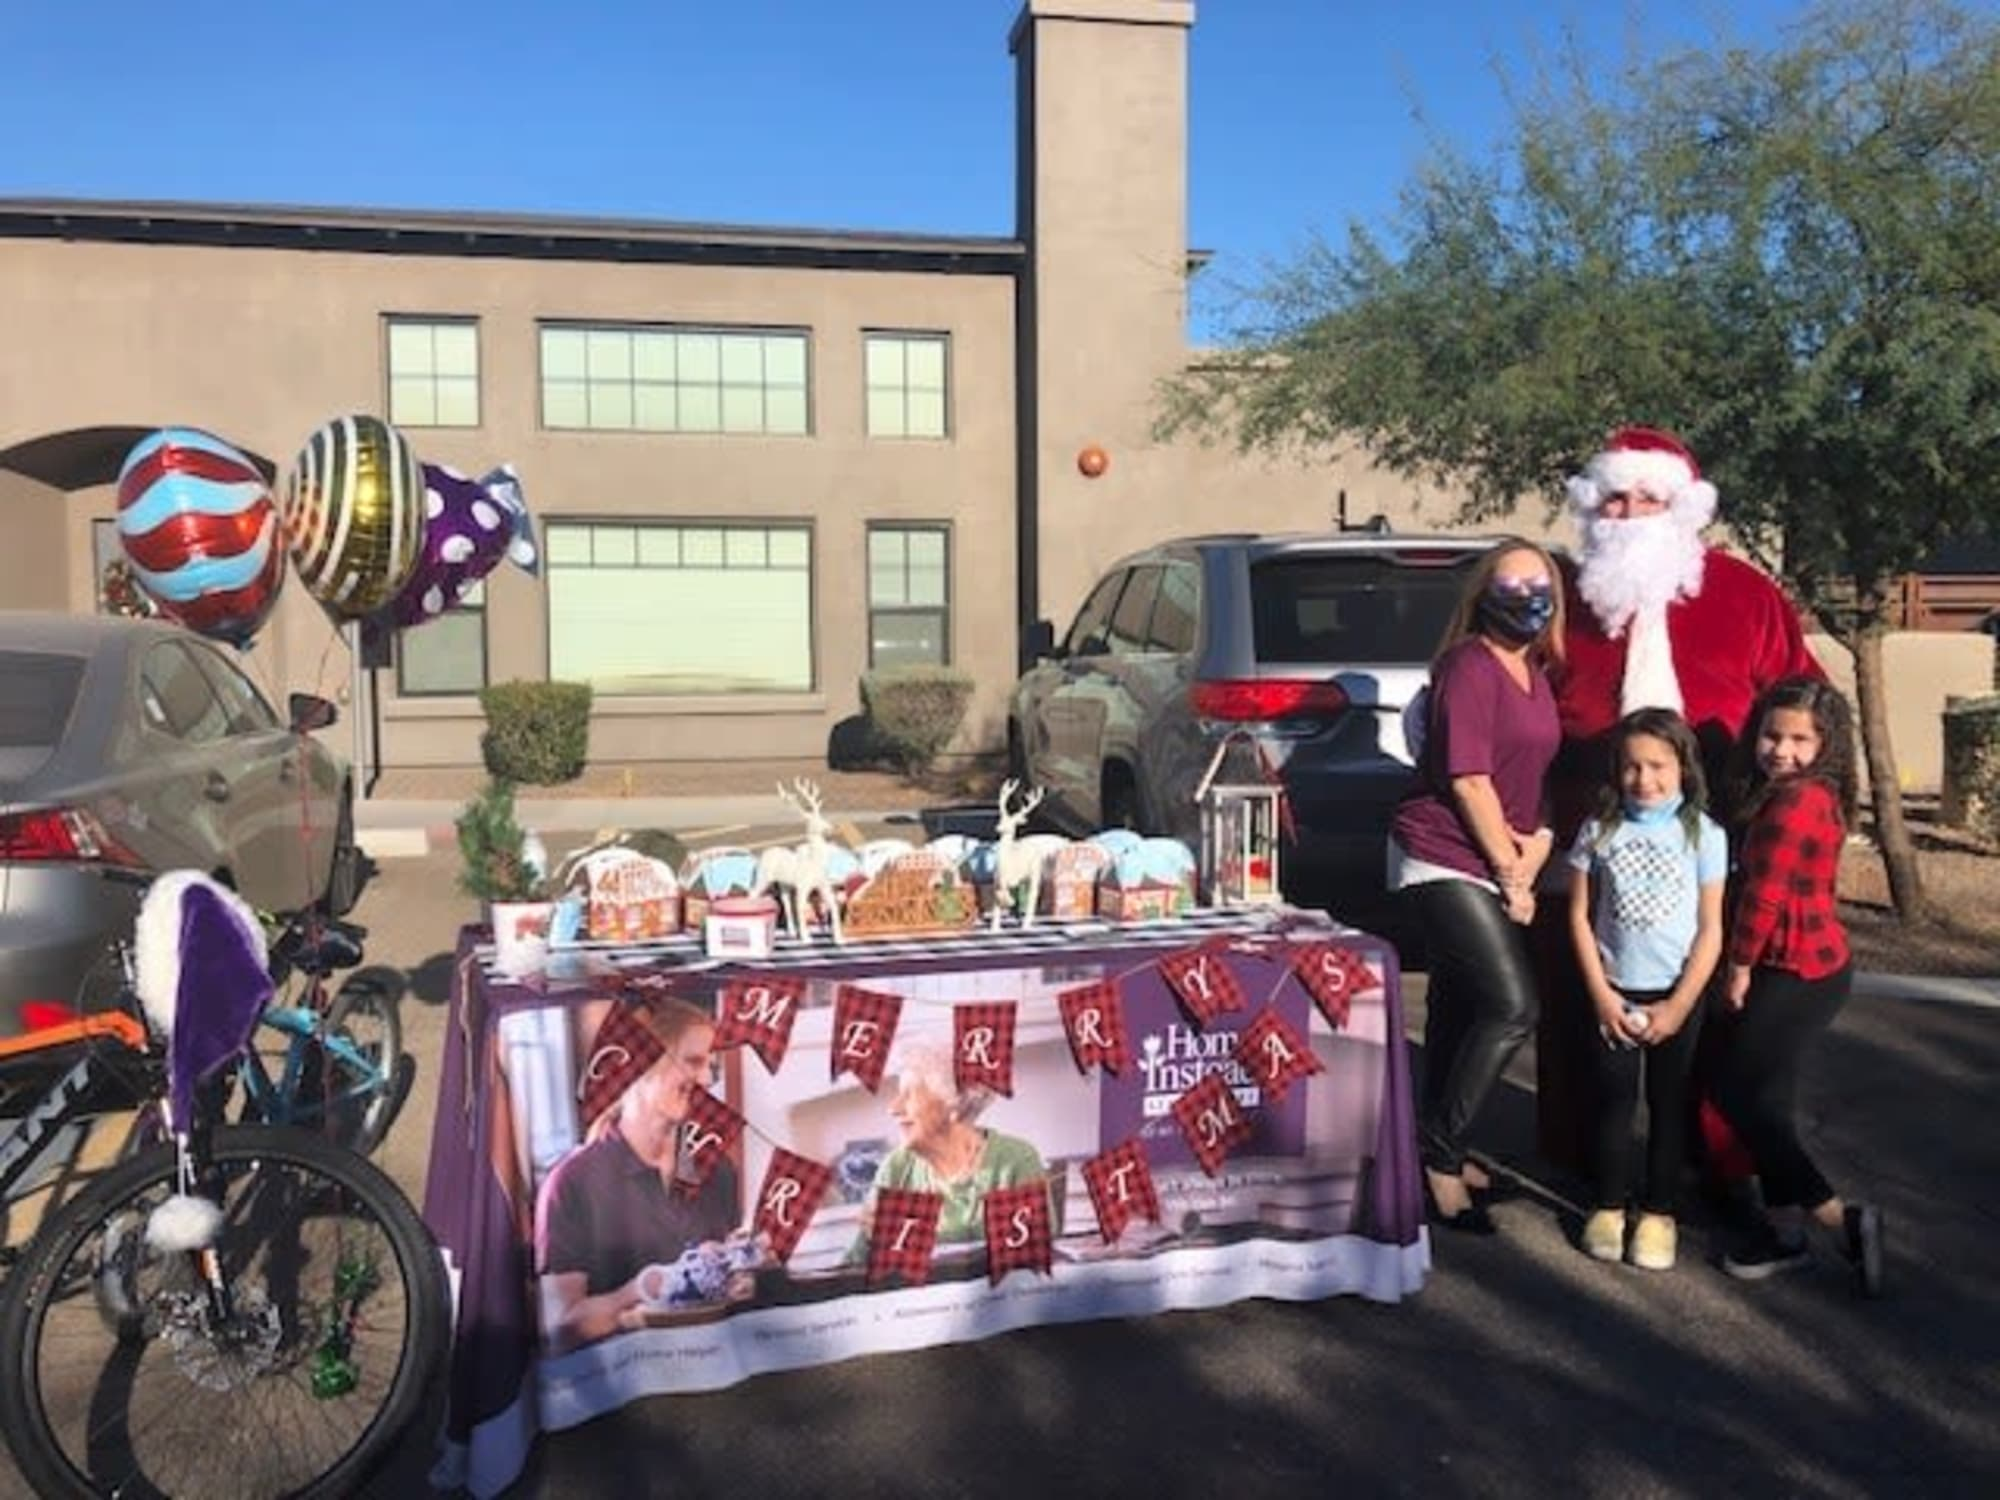 Christmas event at Hacienda Del Rey in Litchfield Park, AZ